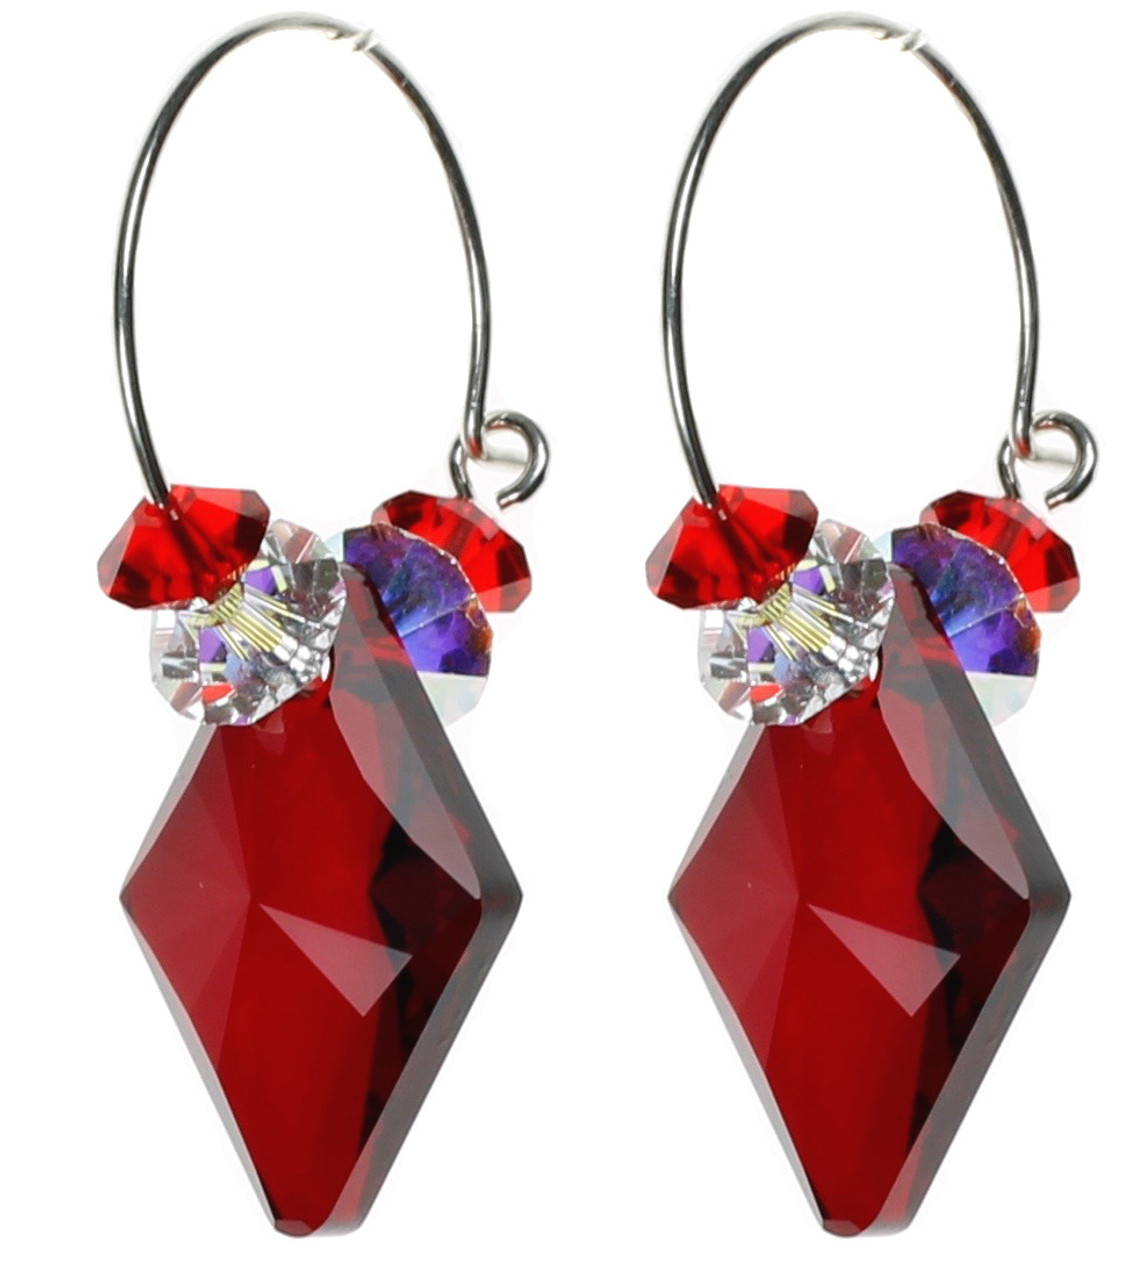 2e4834d49 Ruby Red Swarovski Crystal Hoop Earrings on Sterling Silver Ear Wire by The  Karen Curtis Company